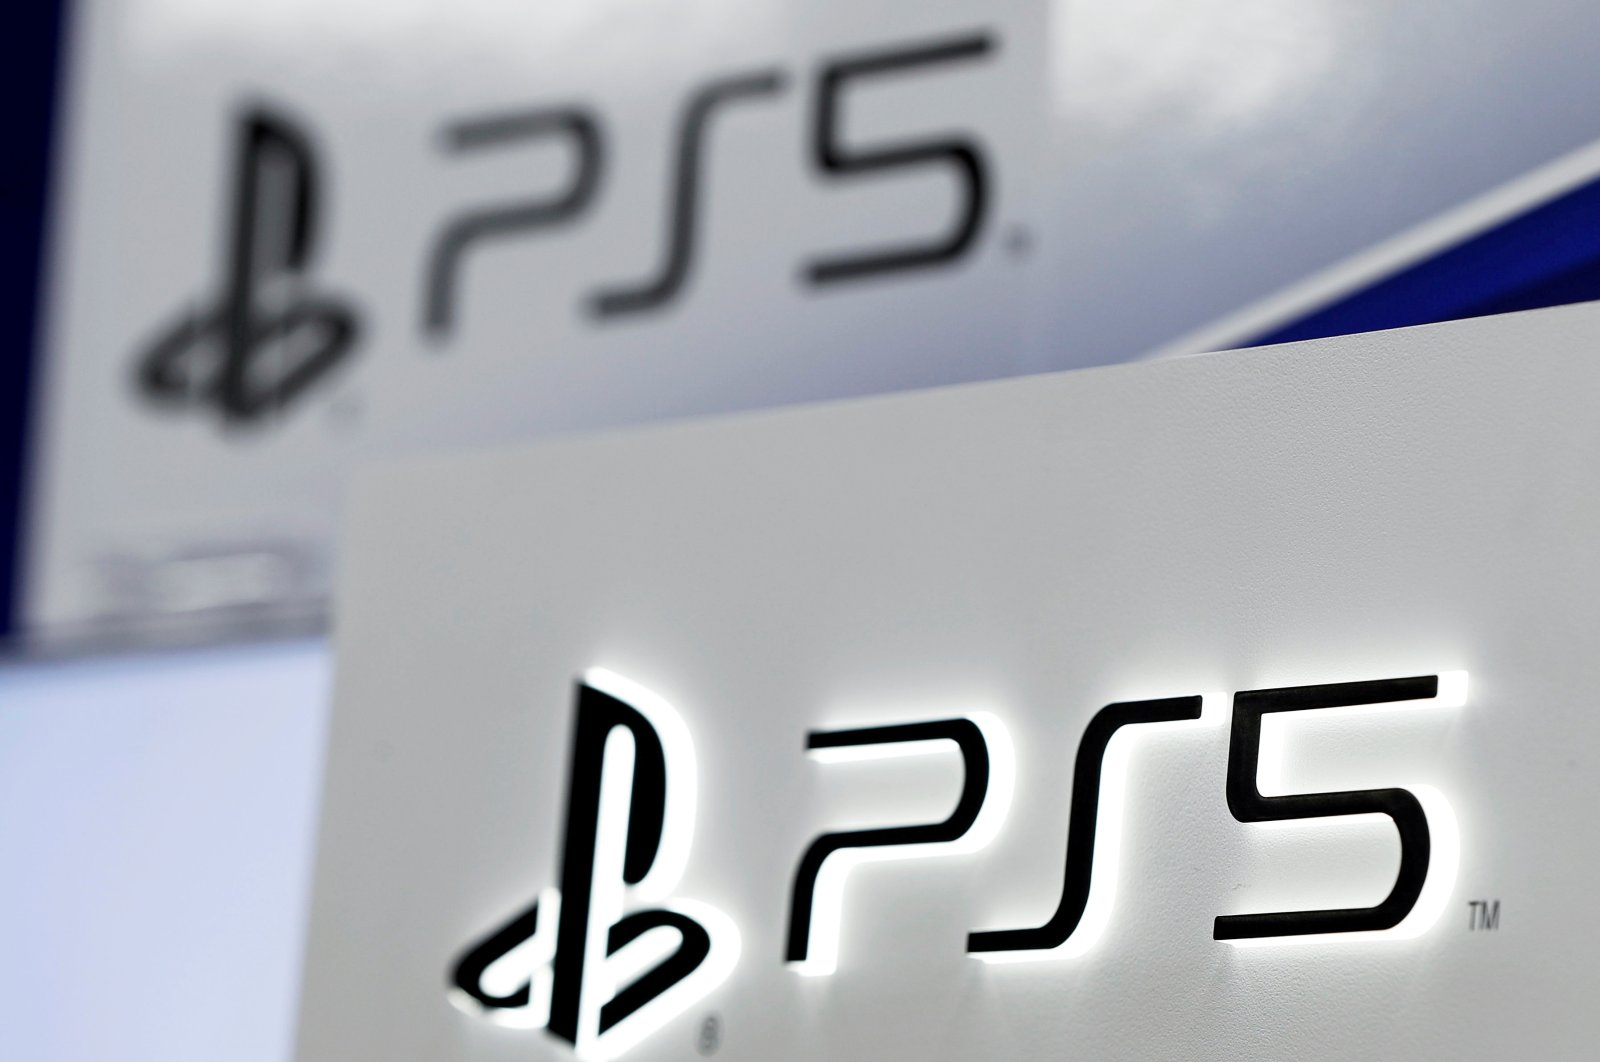 The logos of Sony's PlayStation 5 are displayed at the consumer electronics retailer chain Bic Camera, ahead of its official launch, in Tokyo, Japan, Nov. 10, 2020. (Reuters Photo)